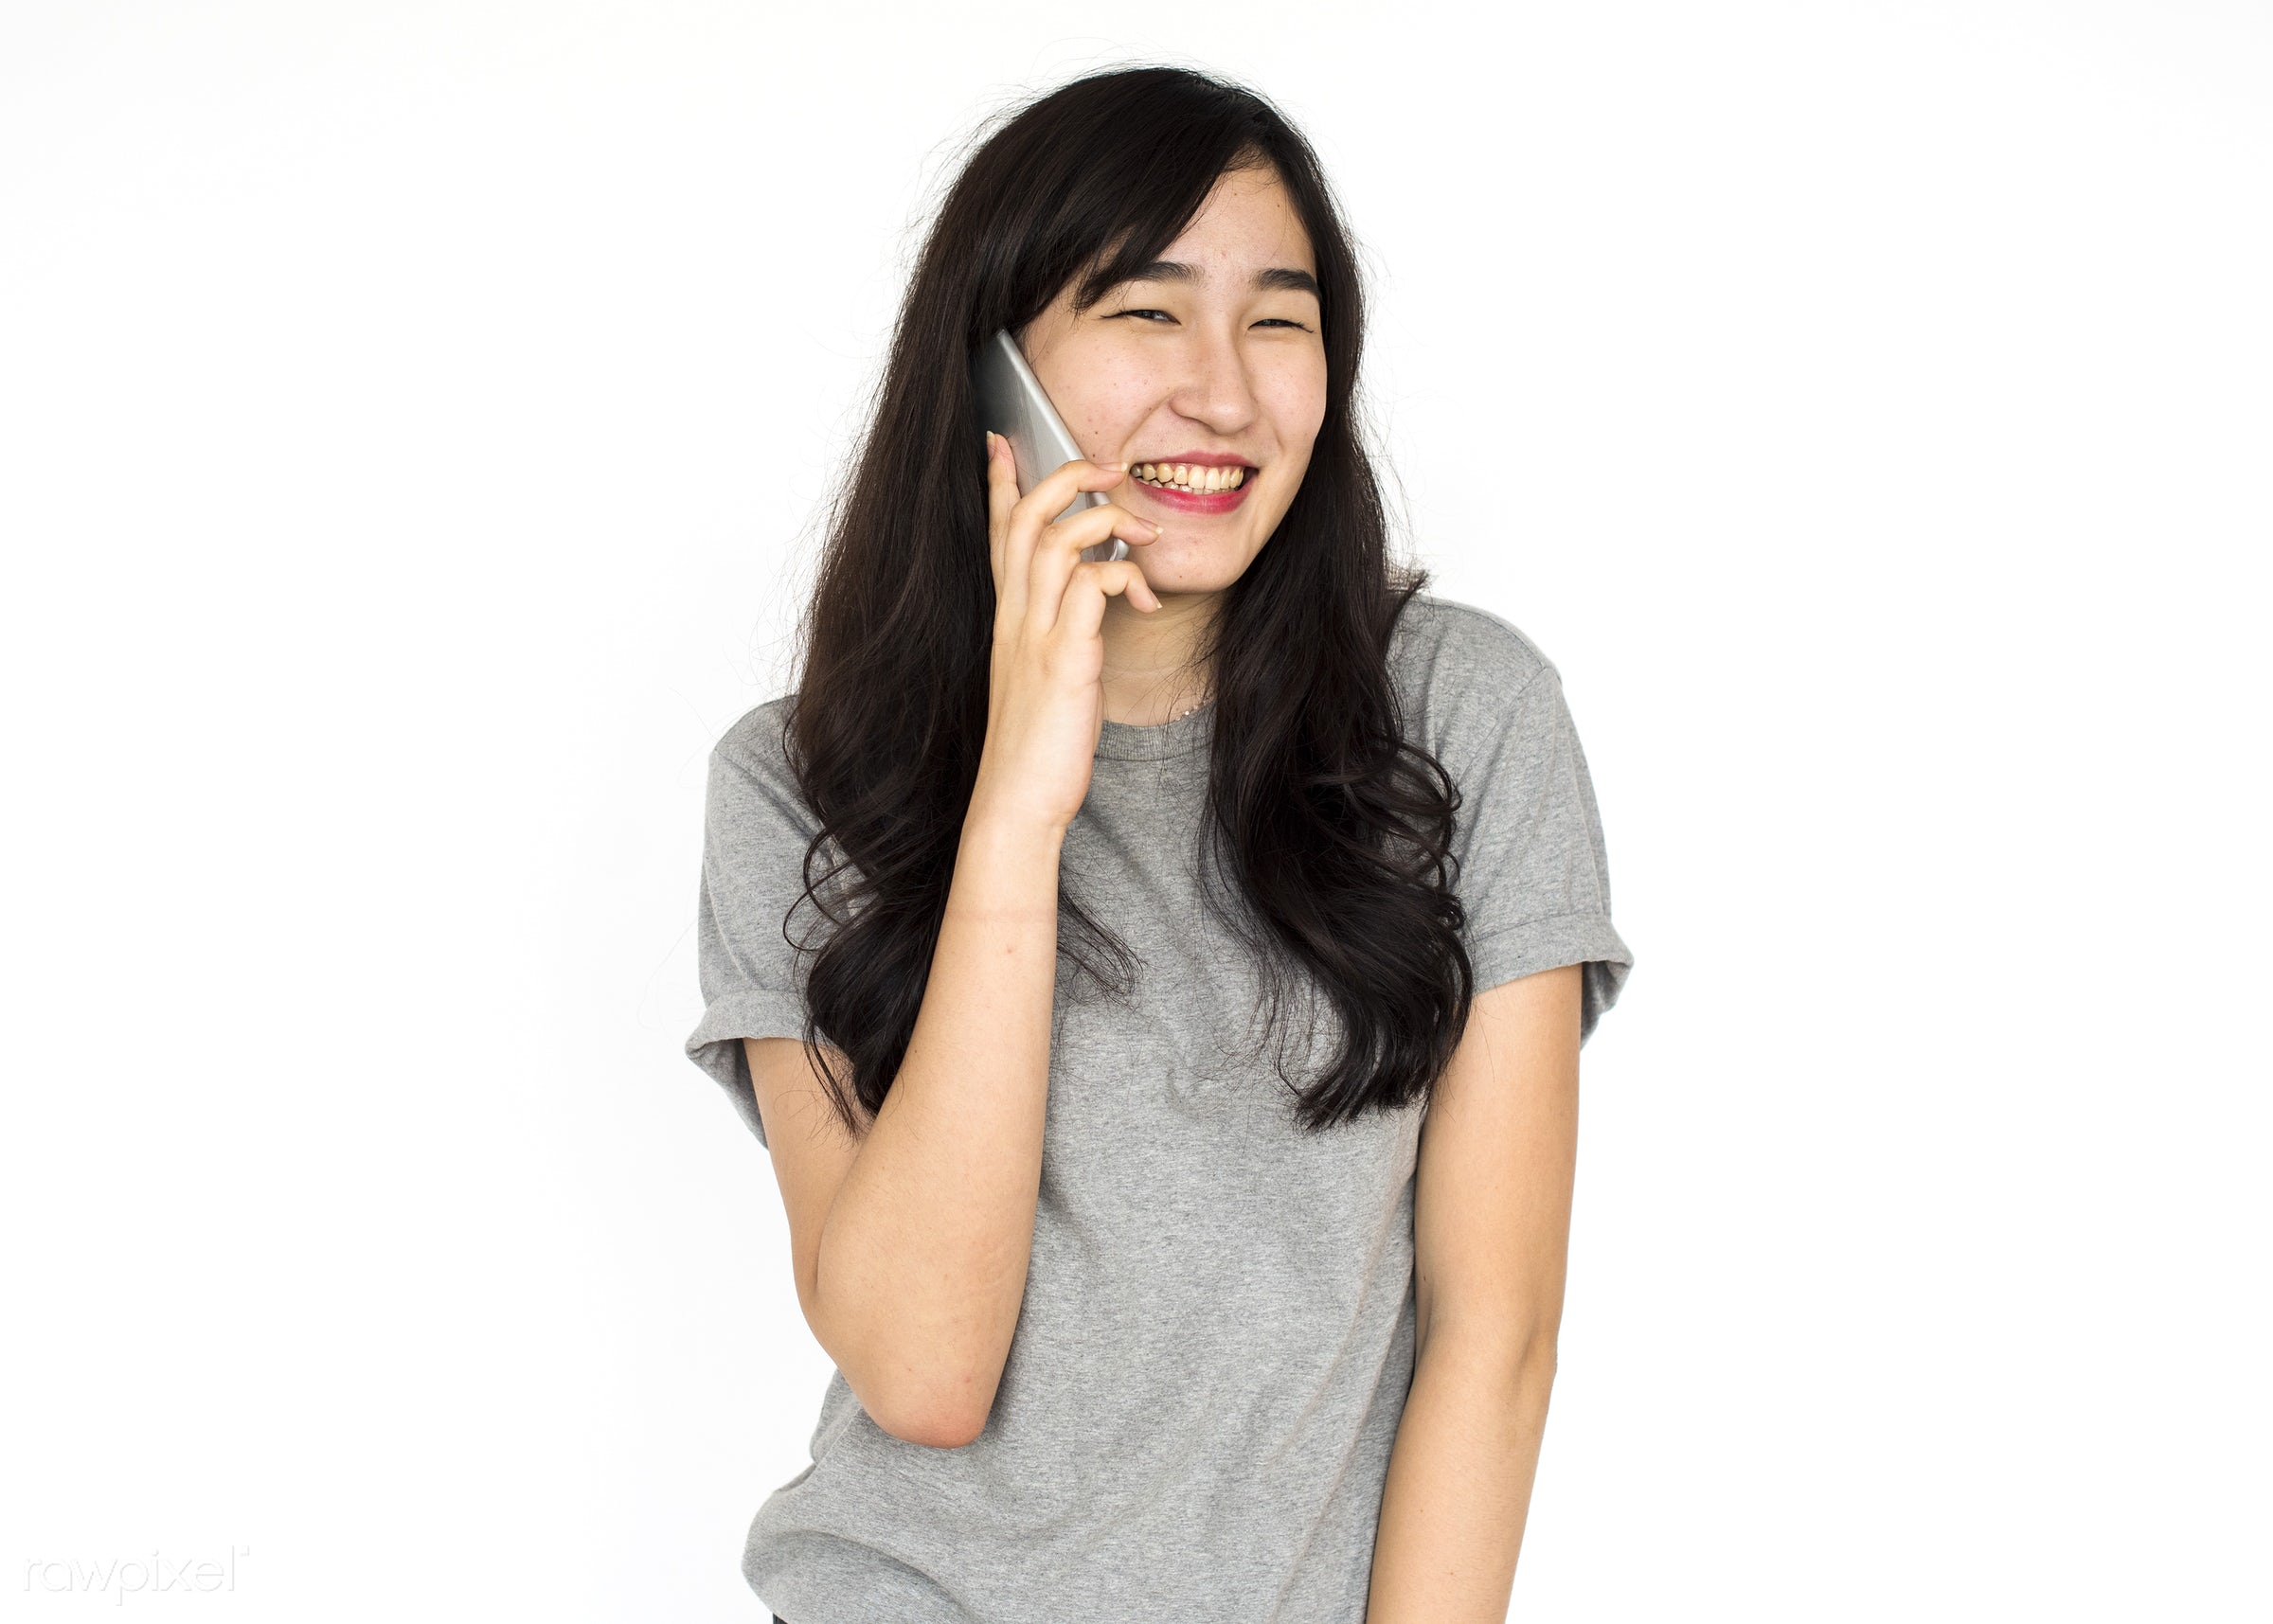 studio, expression, person, technology, people, asian, woman, mobile phone, smile, cheerful, smiling, isolated, connection,...